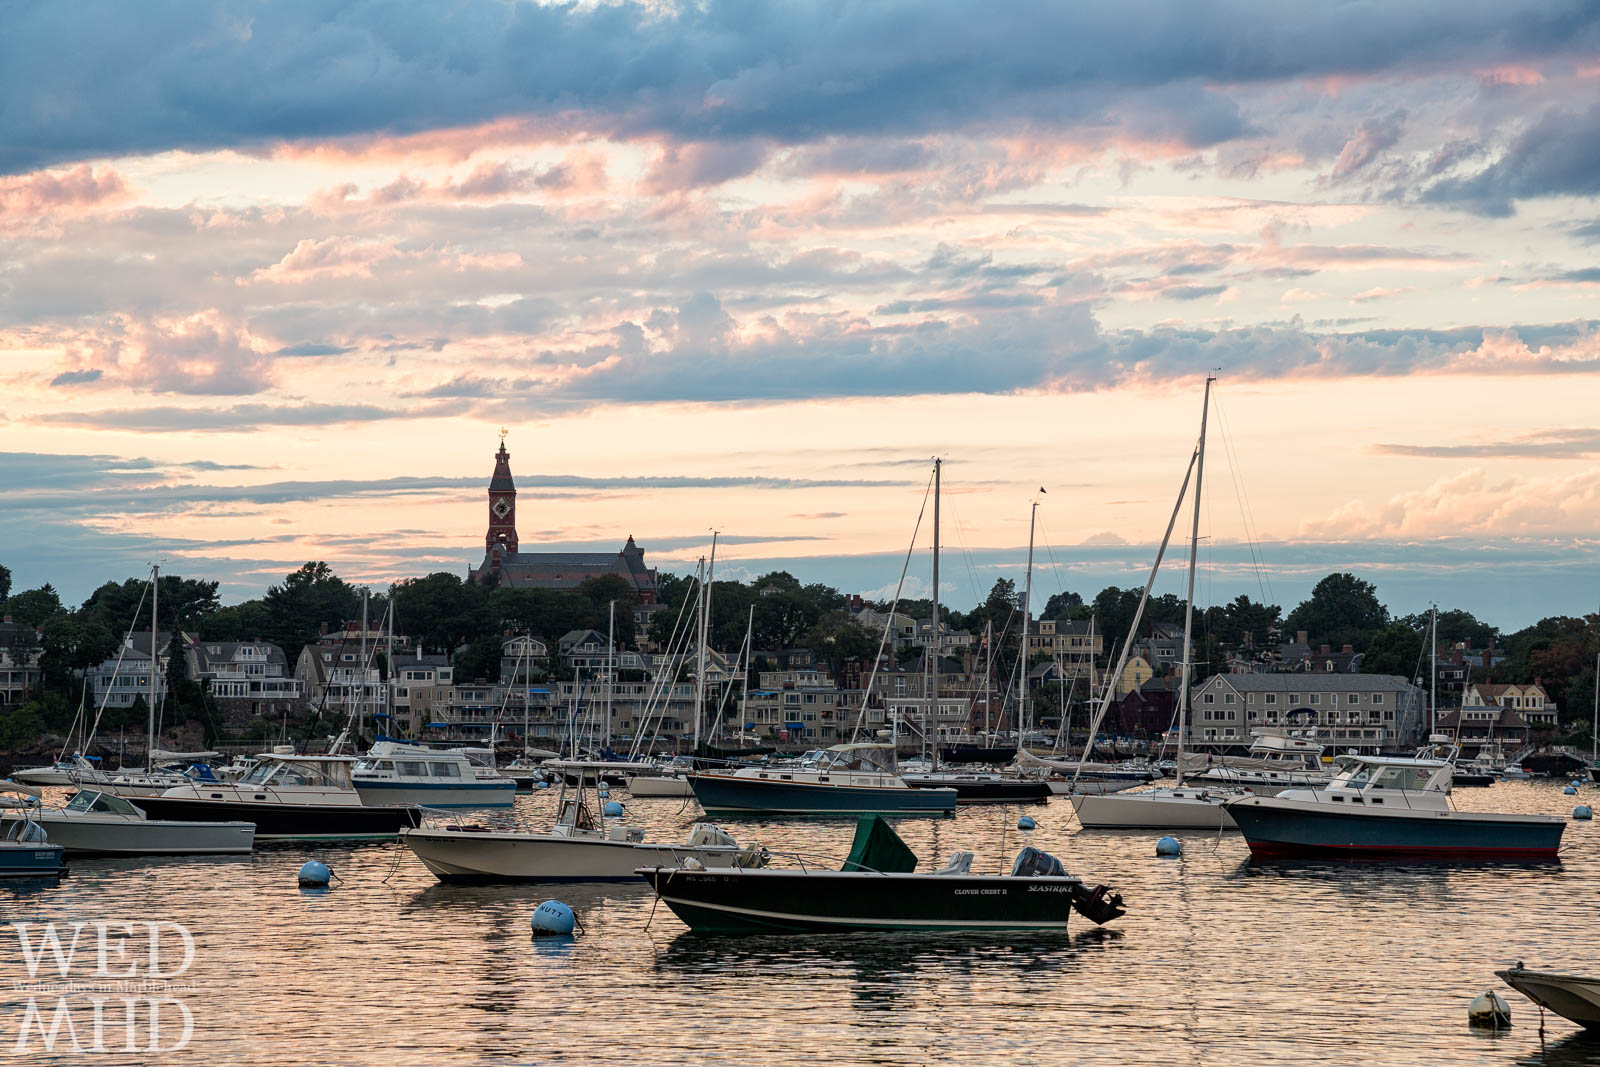 Summer can't come soon enough as this warm sunset image shows the beauty of a full Marblehead harbor